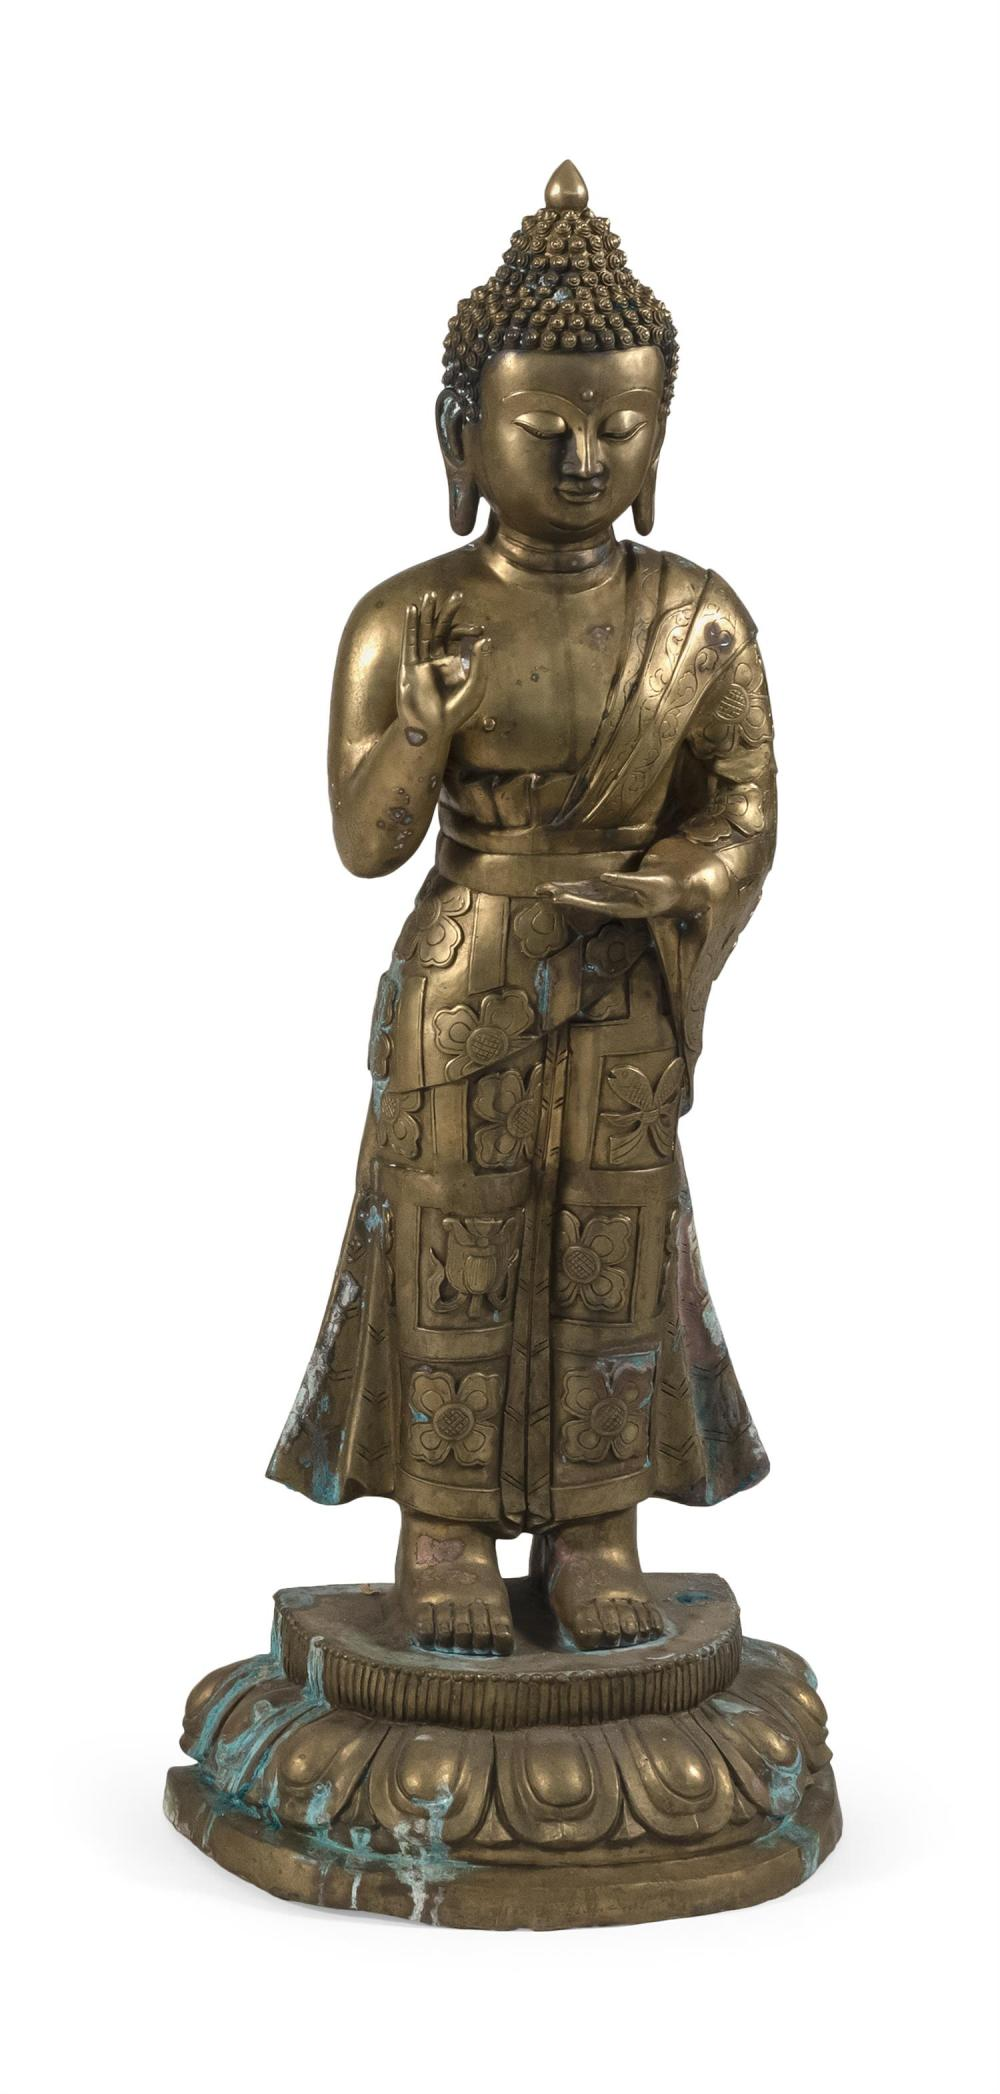 "CHINESE BRONZE FIGURE OF BUDDHA Standing and with a tightly curled top knot and flowing robes. Height 45.5""."